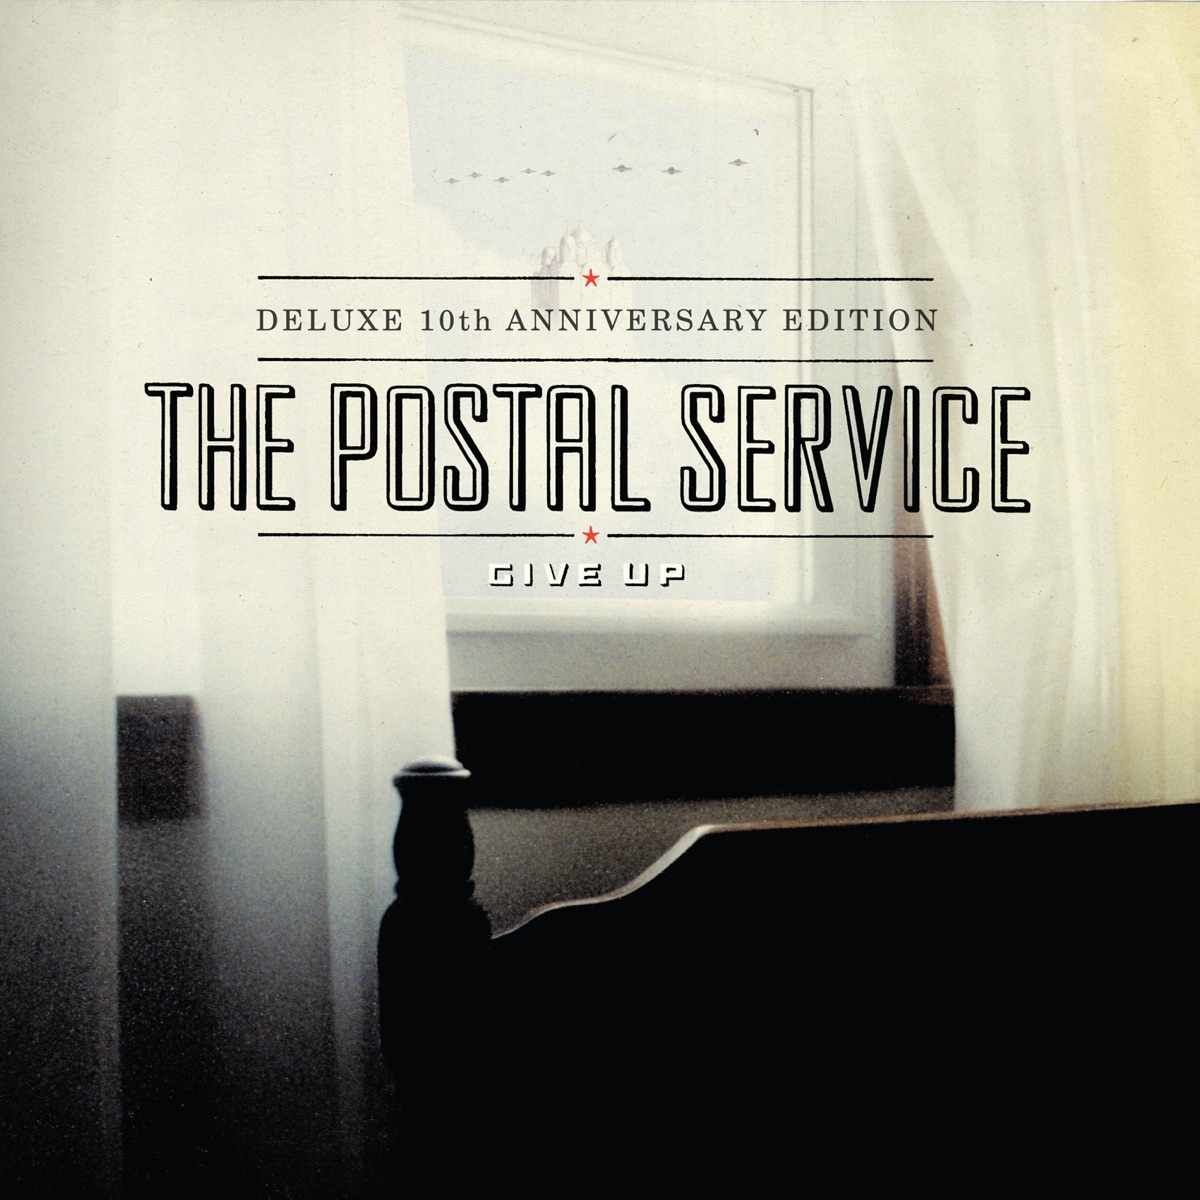 Give Up Deluxe 10th Anniversary Edition The Postal Service CD cover